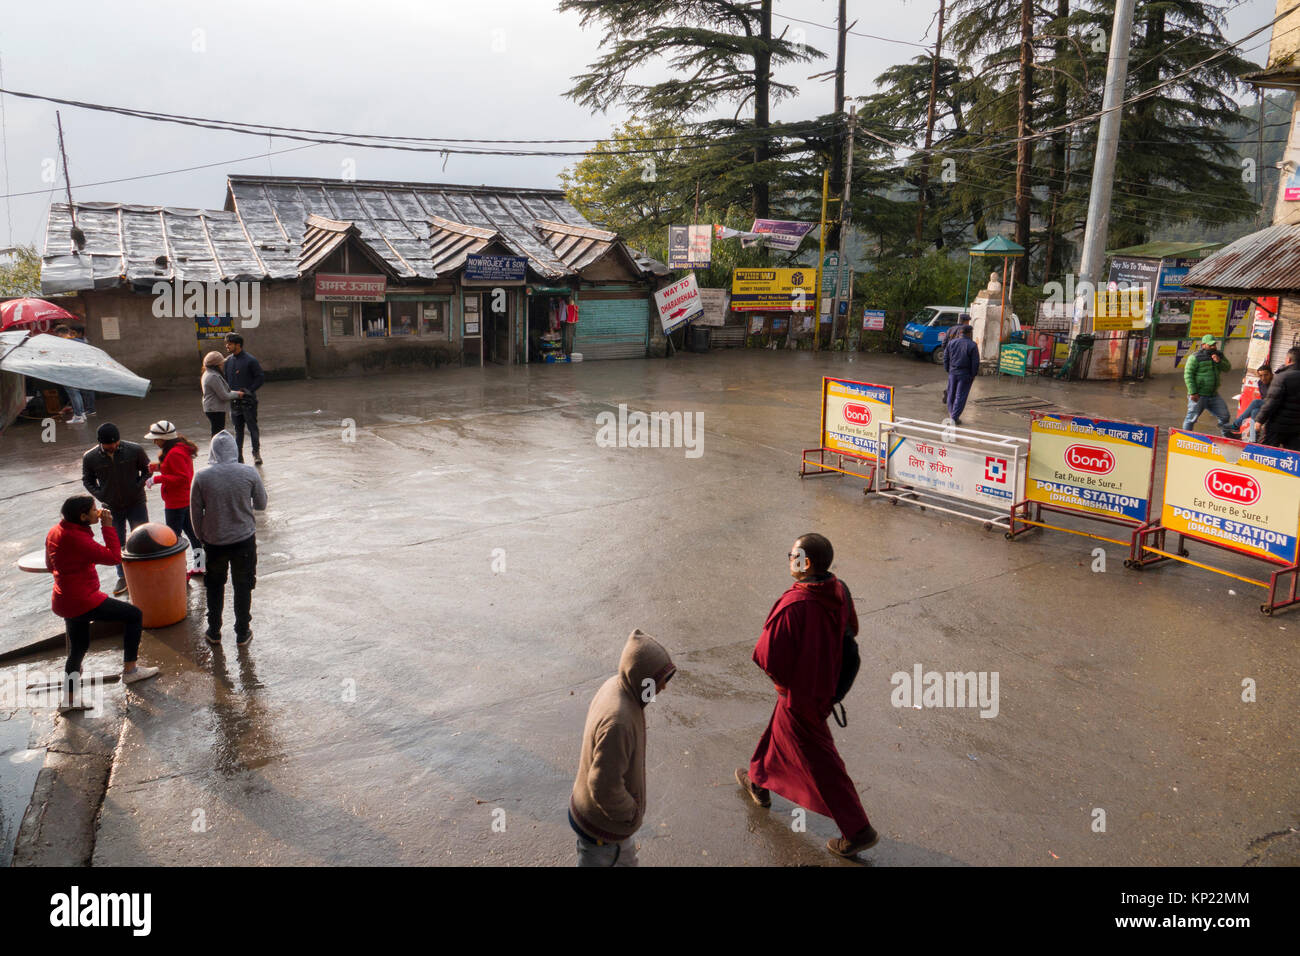 Buddhist monks walk through the main chowk in Mcleod Ganj, India - Stock Image